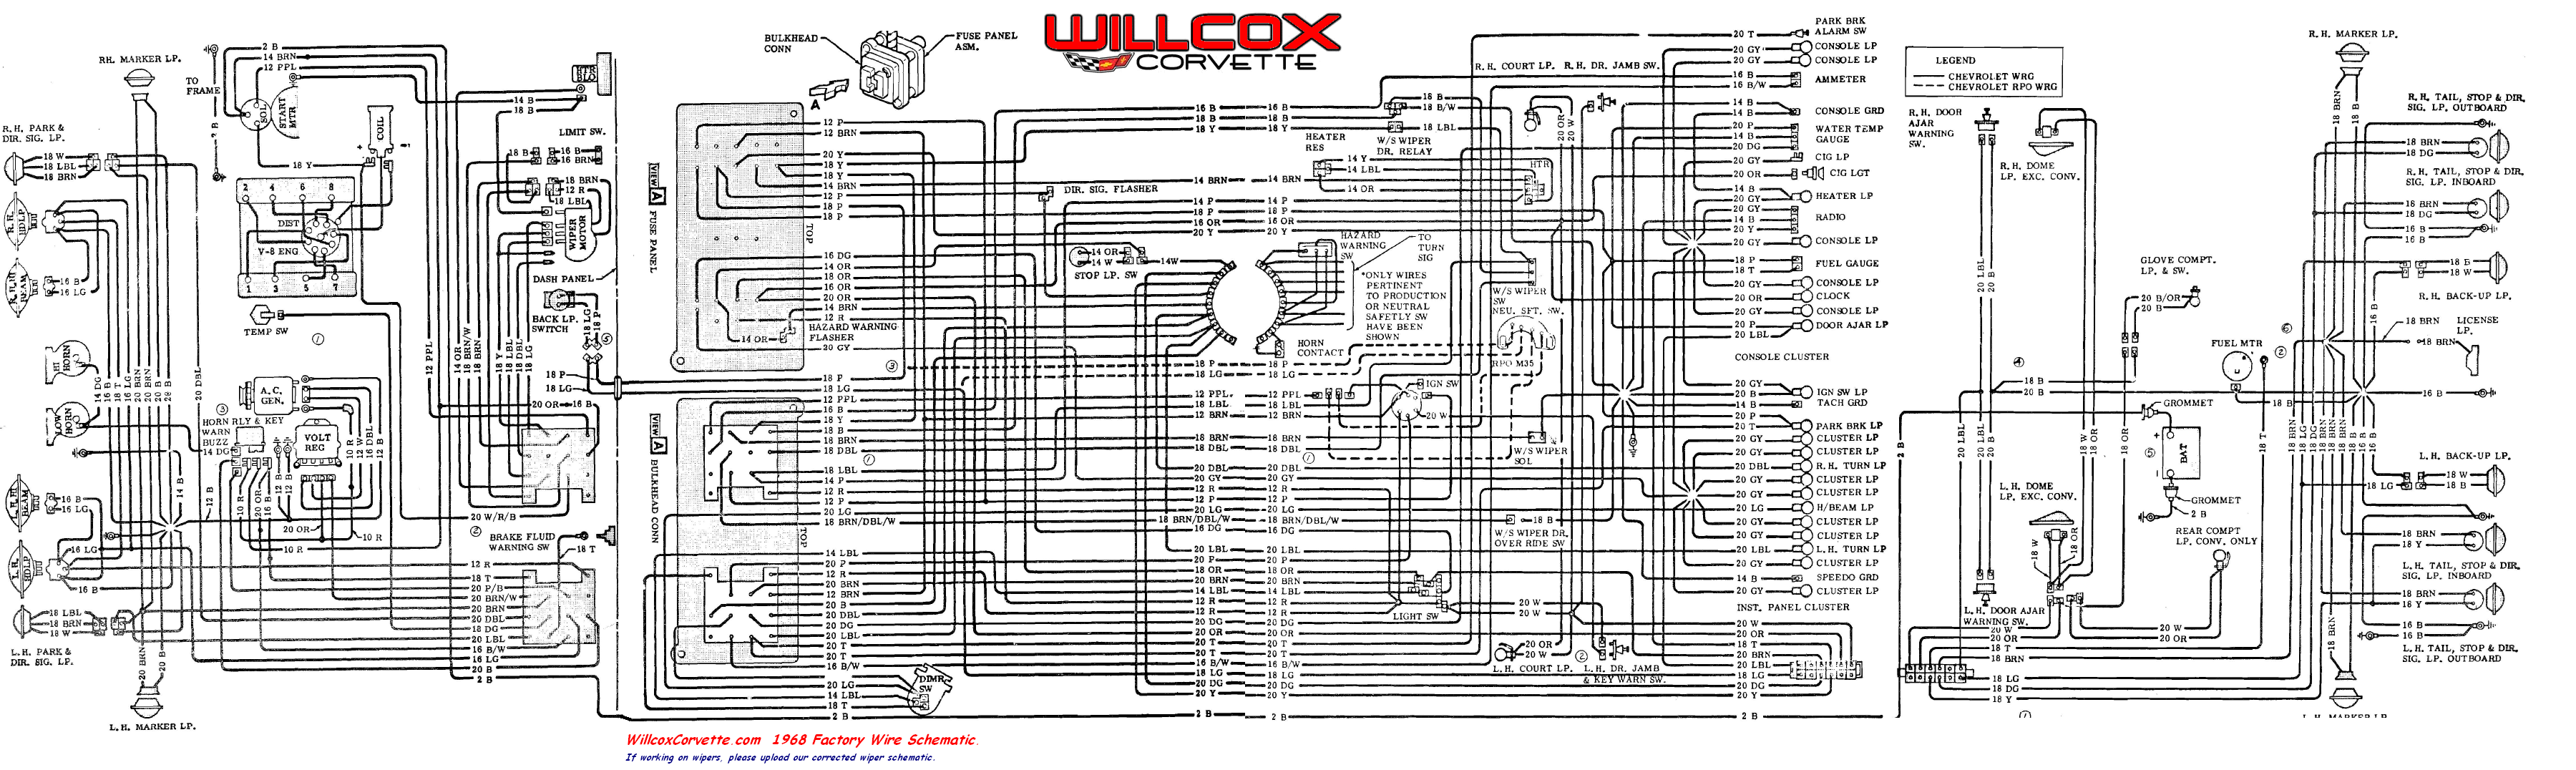 68 wire tracer corvette wiring harness 1998 wiring diagrams instruction 75 corvette wiring diagram at bakdesigns.co